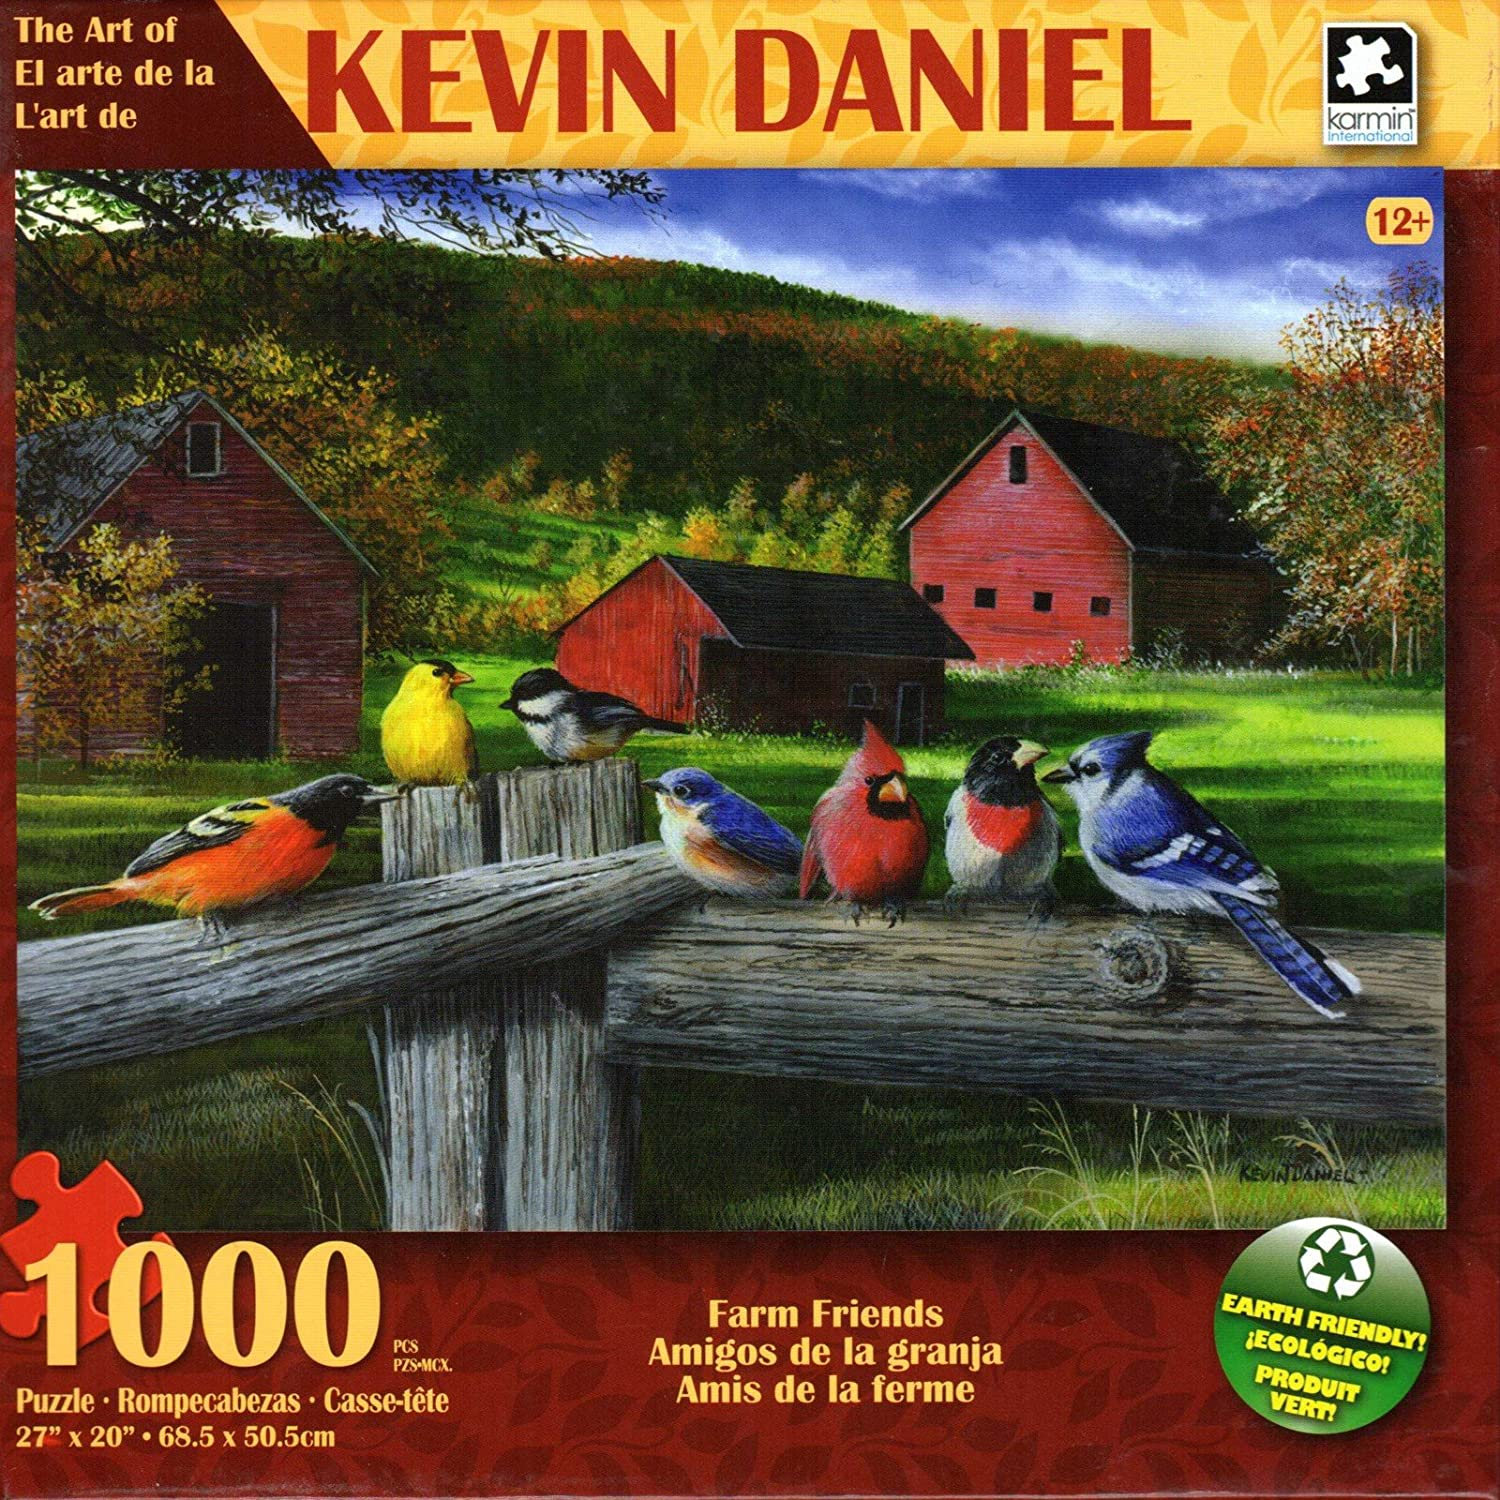 Farm Friends By Kevin Daniel 1000 Piece Puzzle George